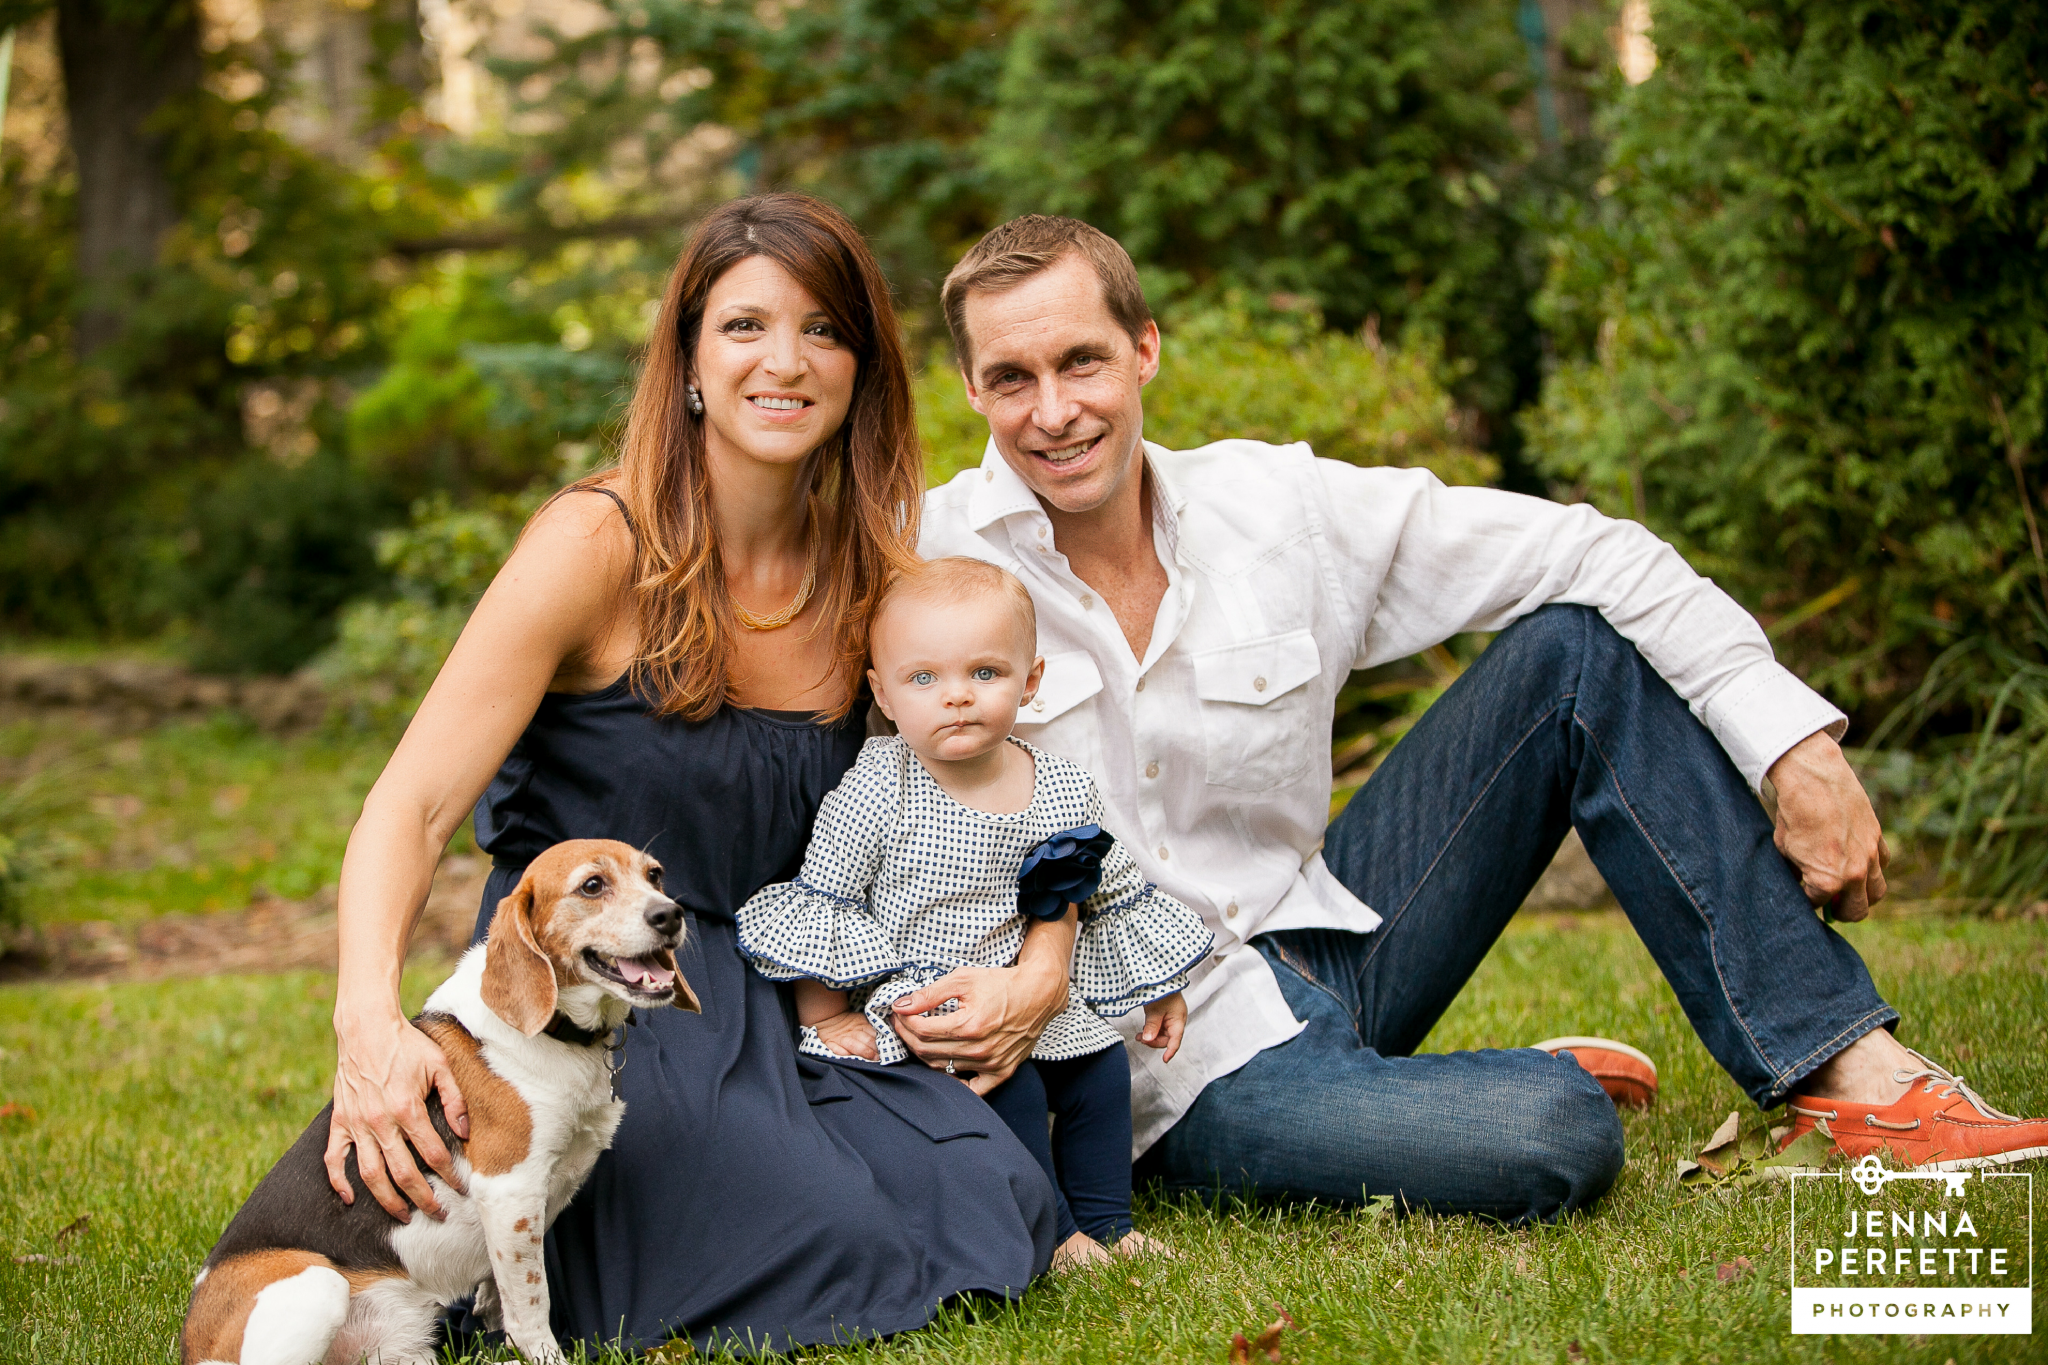 What to Wear to Your Family Session for the Best Photos